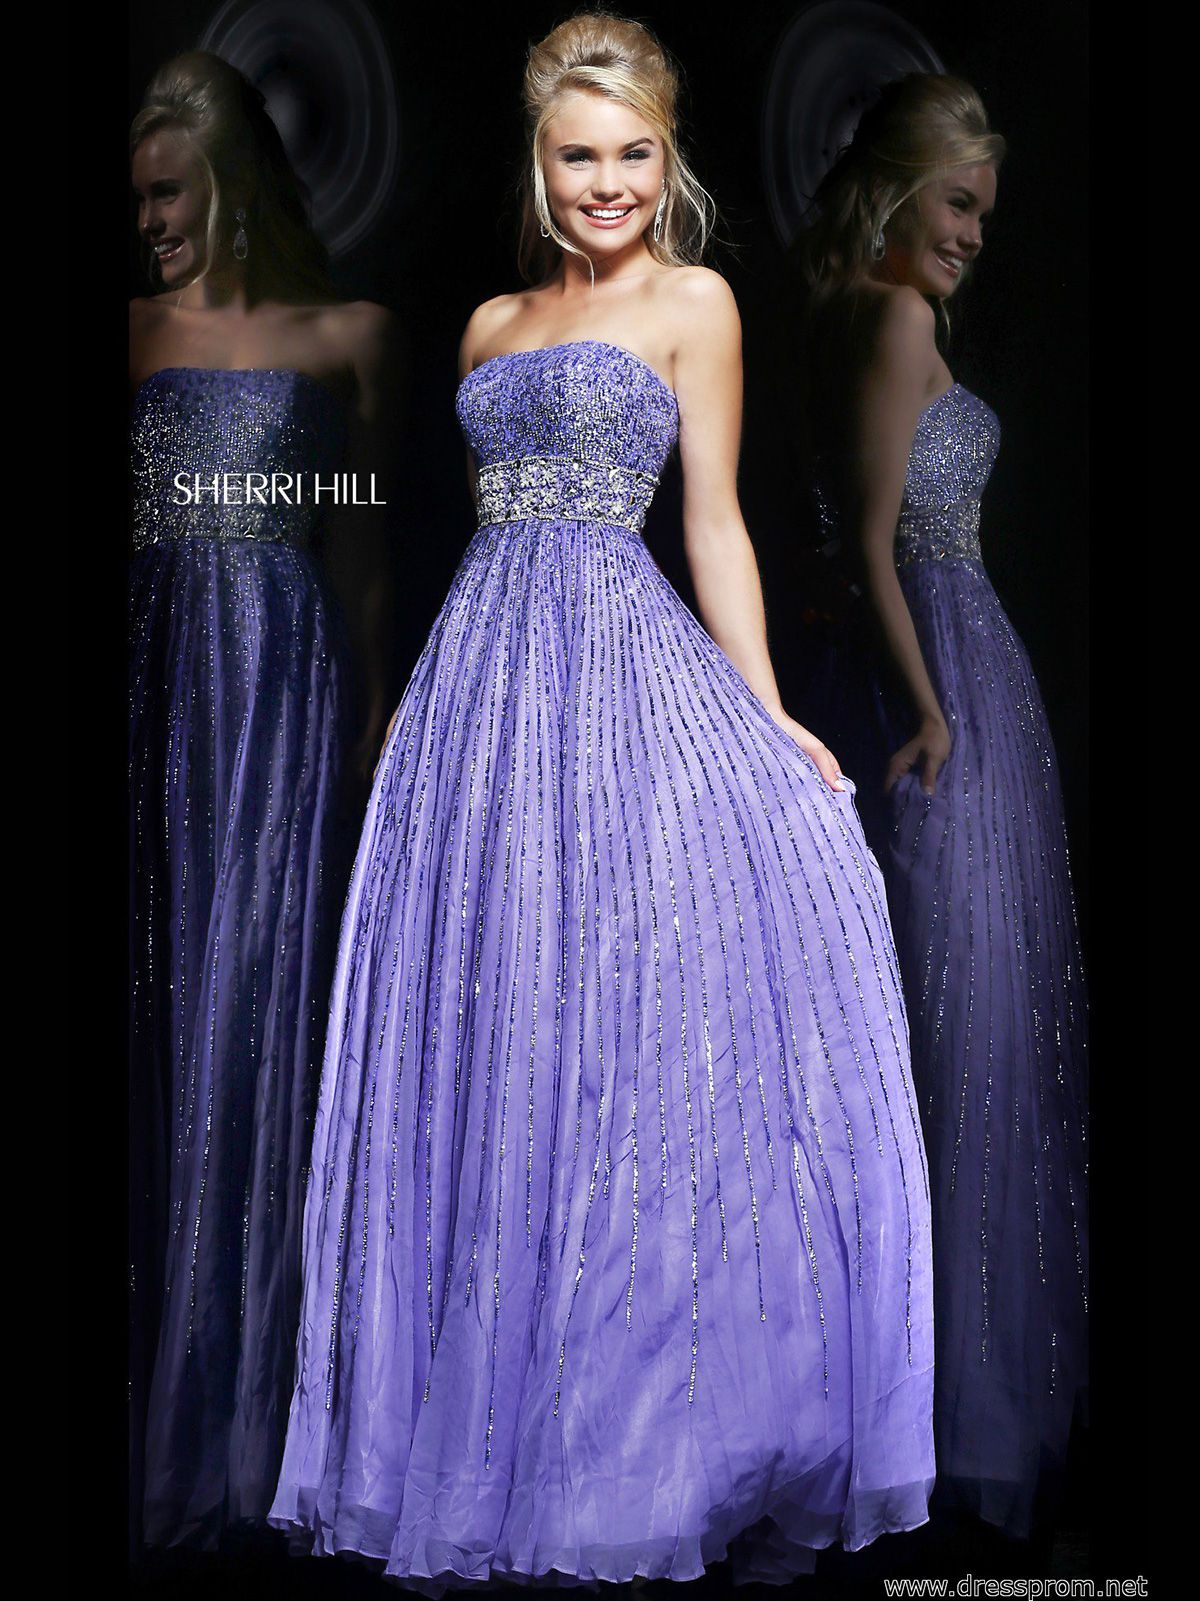 This sparkling sherri hill prom dress is perfect to bring the